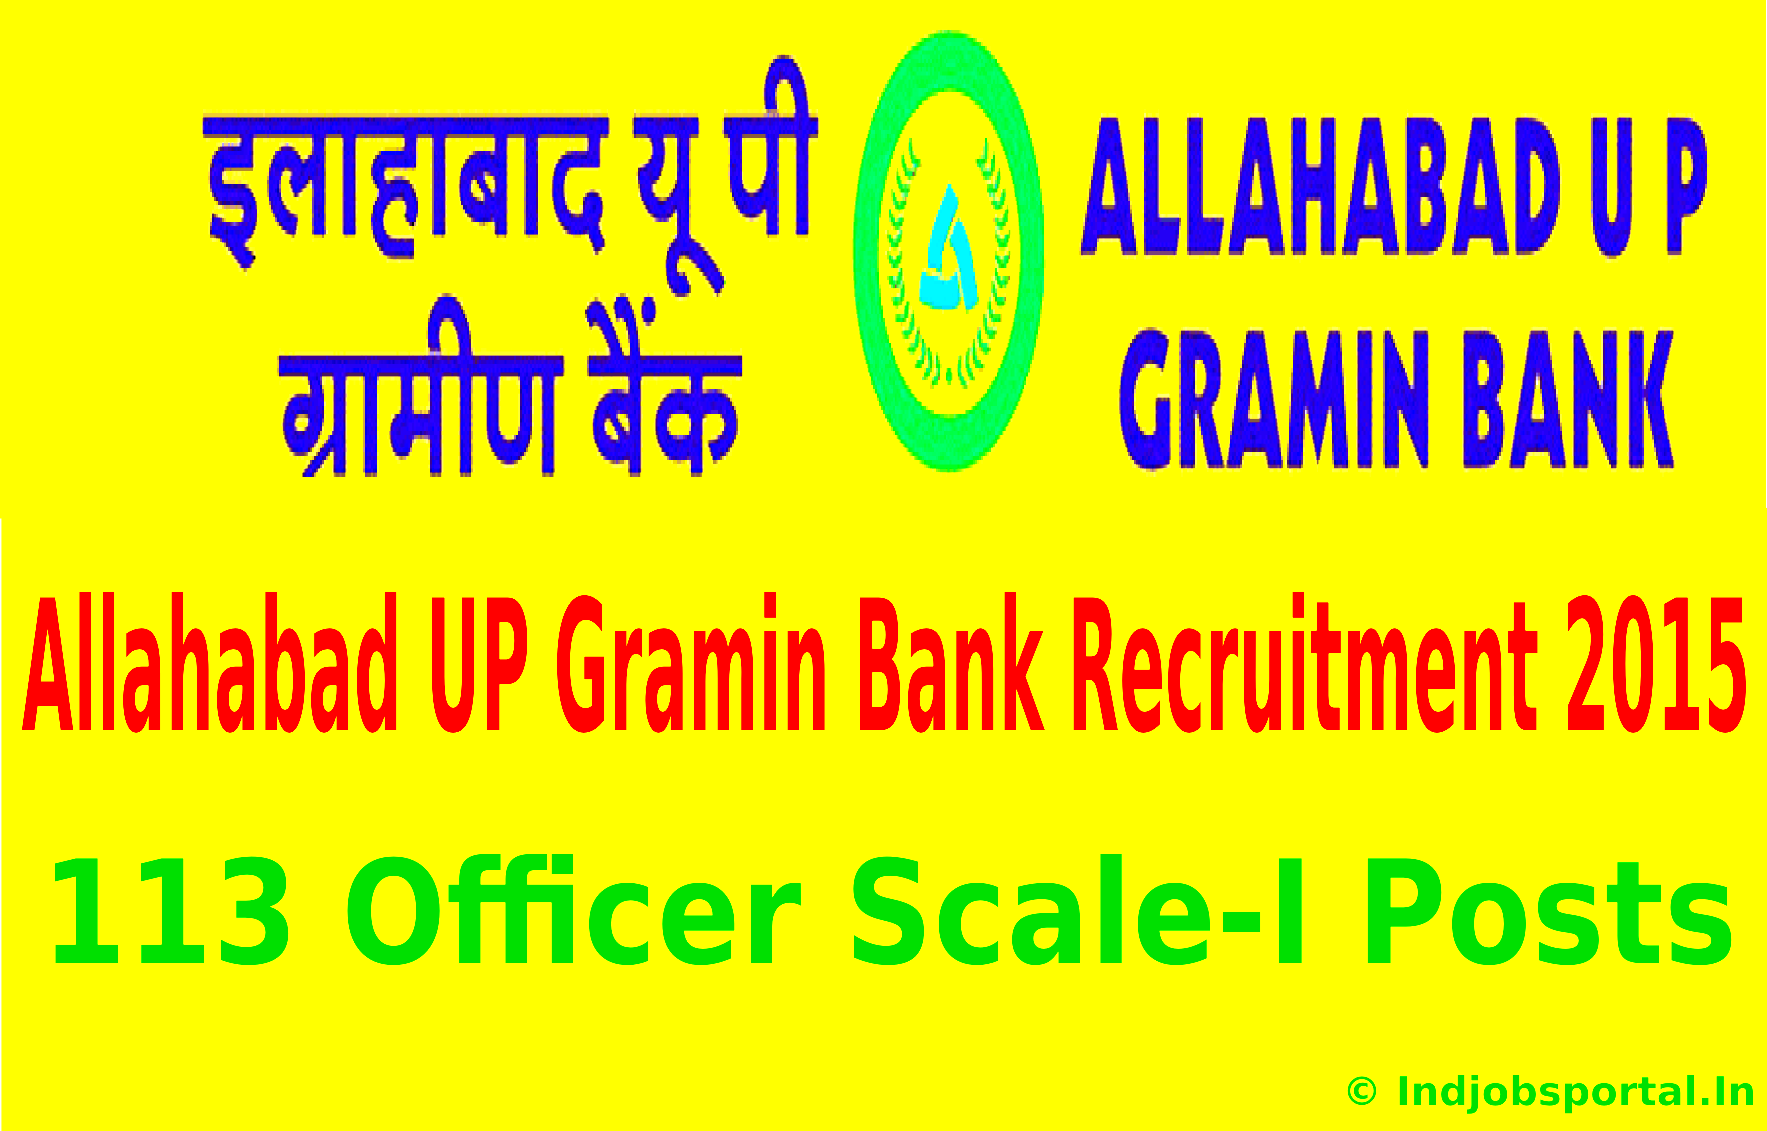 Allahabad UP Gramin Bank Recruitment 2015 For 113 Officer Scale-I Posts